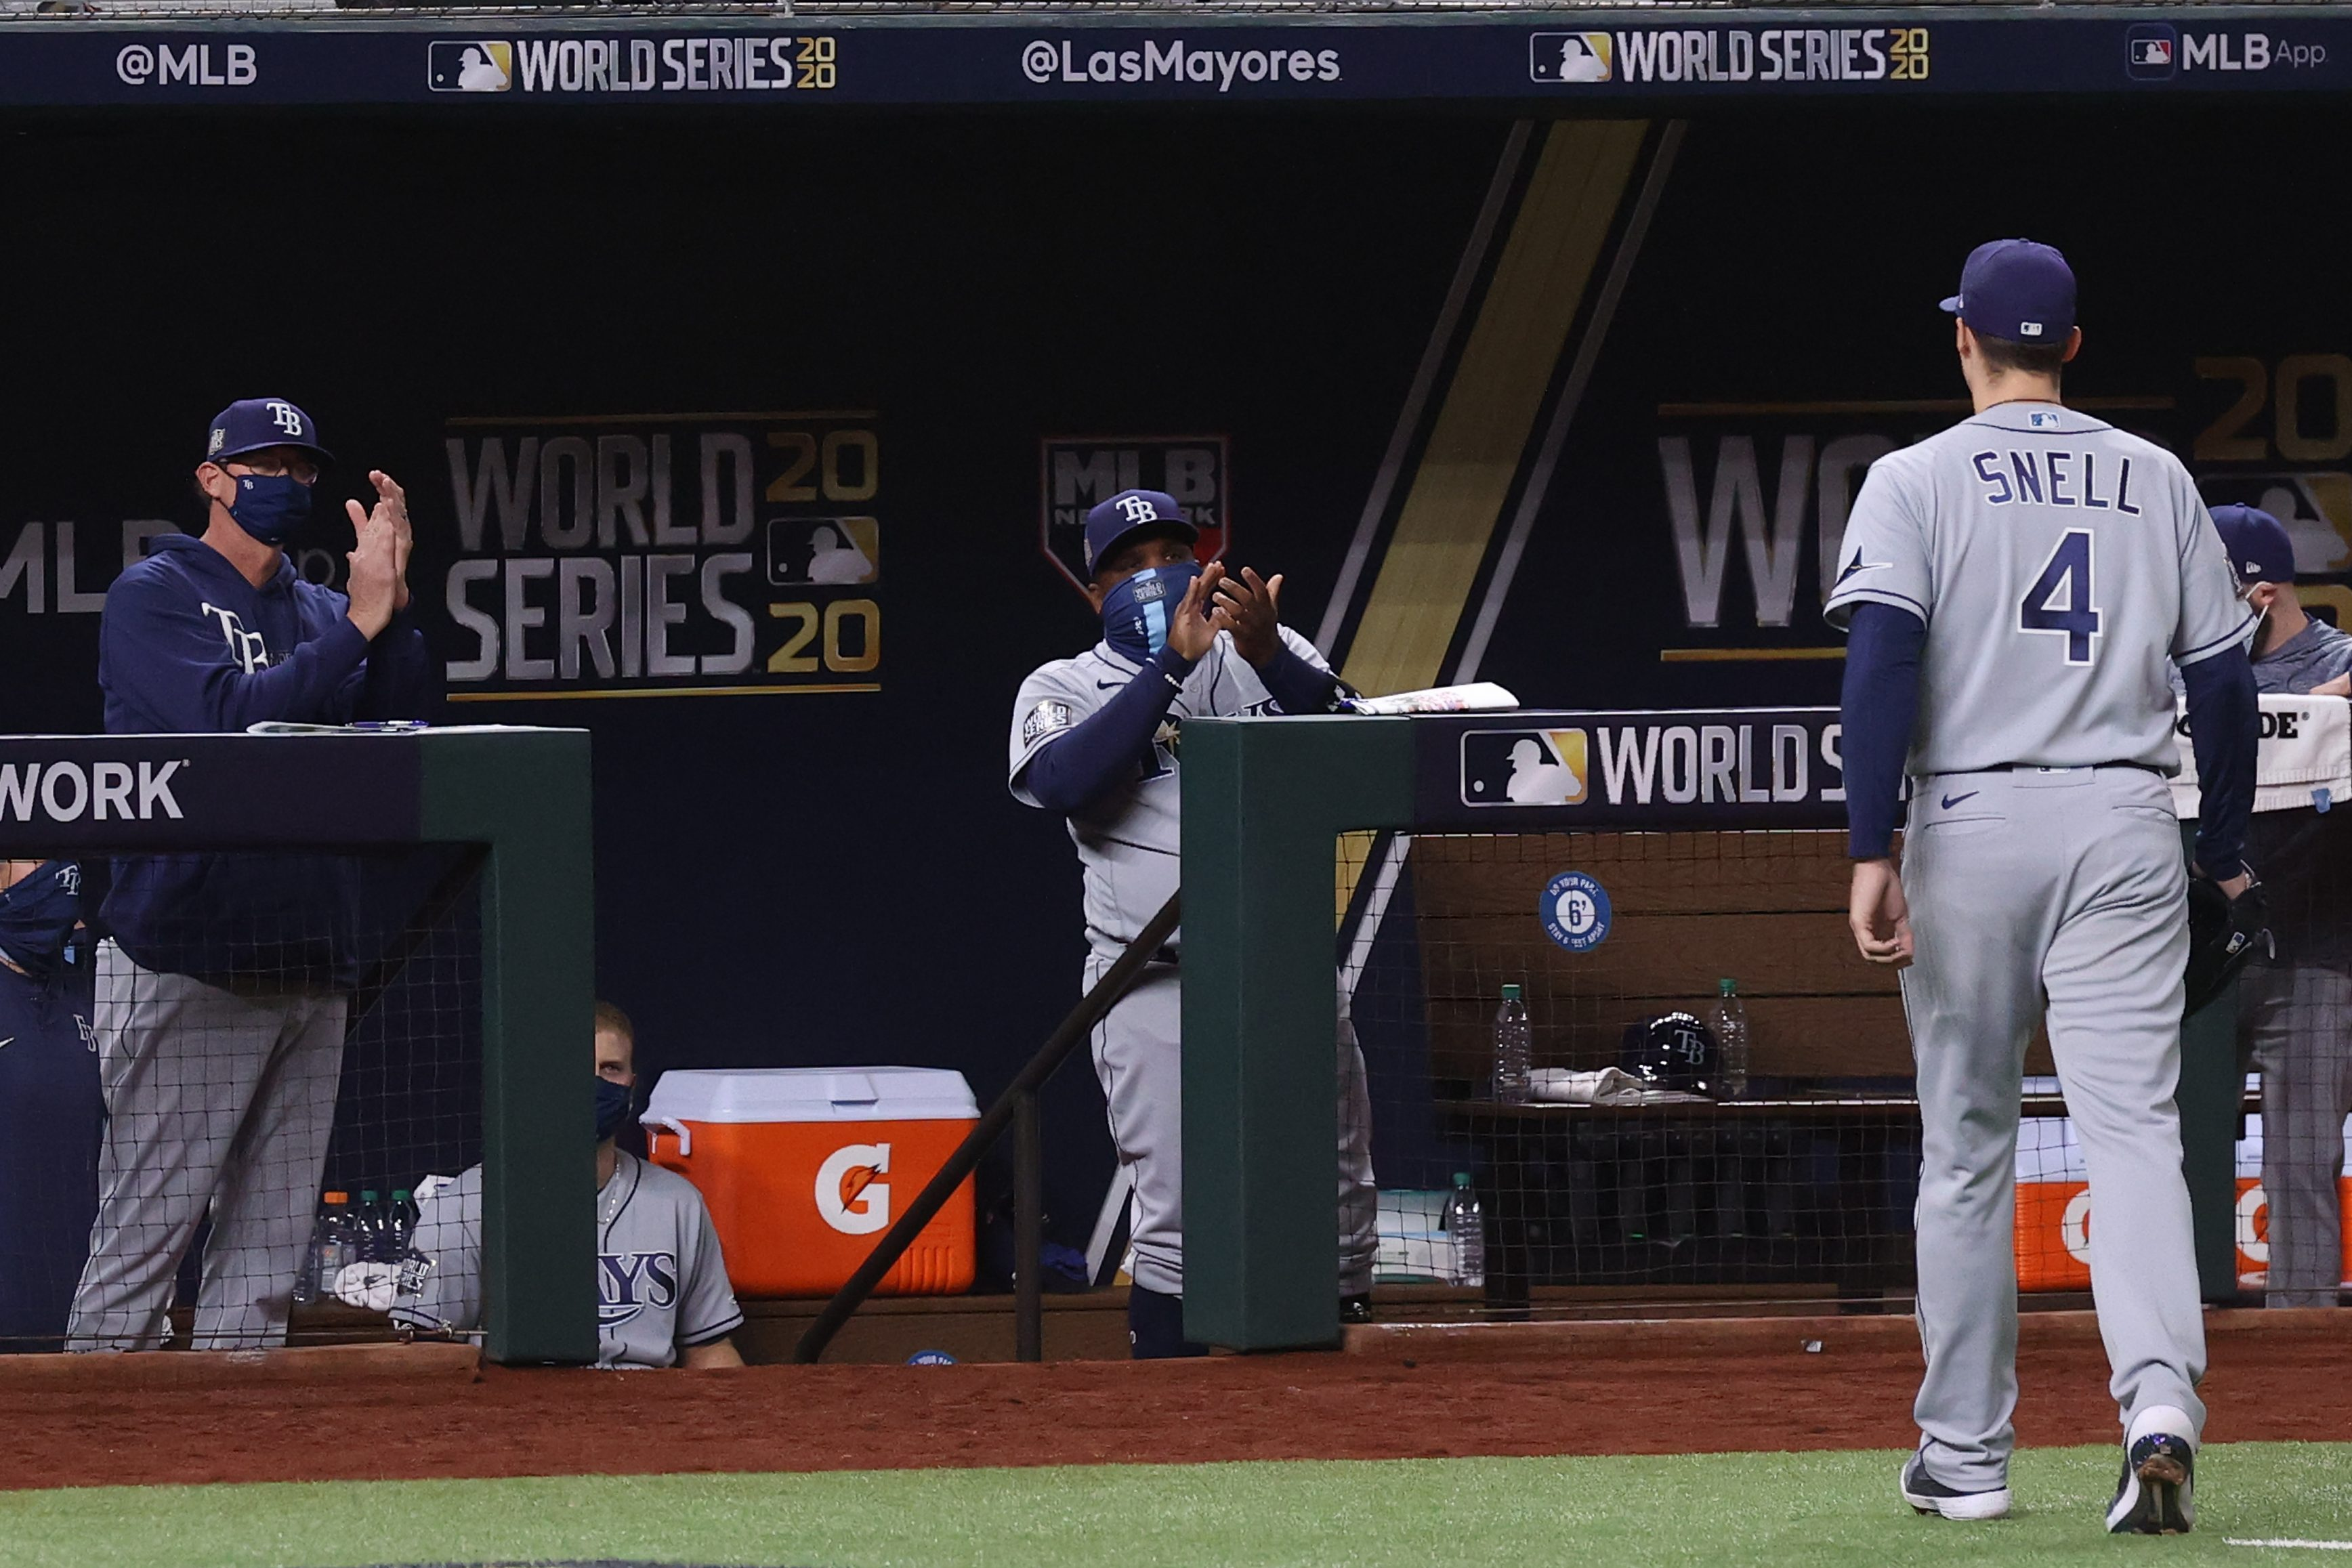 Blake Snell #4 of the Tampa Bay Rays is congratulated by pitching coach Kyle Snyder and third base coach Rodney Linares after being taken out of the game